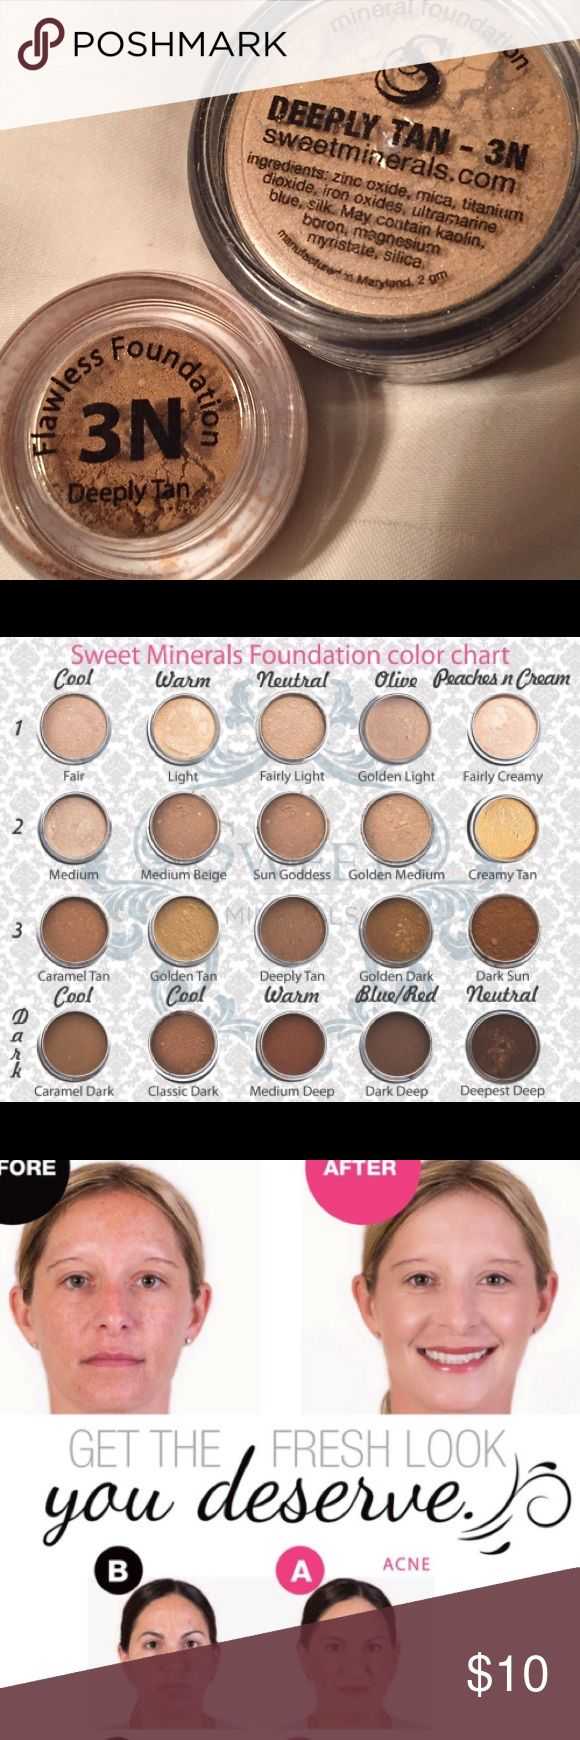 Flawless foundation! Tan complexion, neutral tone Flawless foundation!! All natural, not cakey! No fillers like bismuth, talc, and also paraben-free. Cruelty free. Better than Bare Minerals (4 hour wear) and this lasts up 18 hours (or longer)! I've been using this brand for 3 years and I will never switch to anything else. It's never cakey and because there's no bismuth or talc, it's never itchy and it feels light as air. This has the best coverage you'll ever see without feeling heavy…